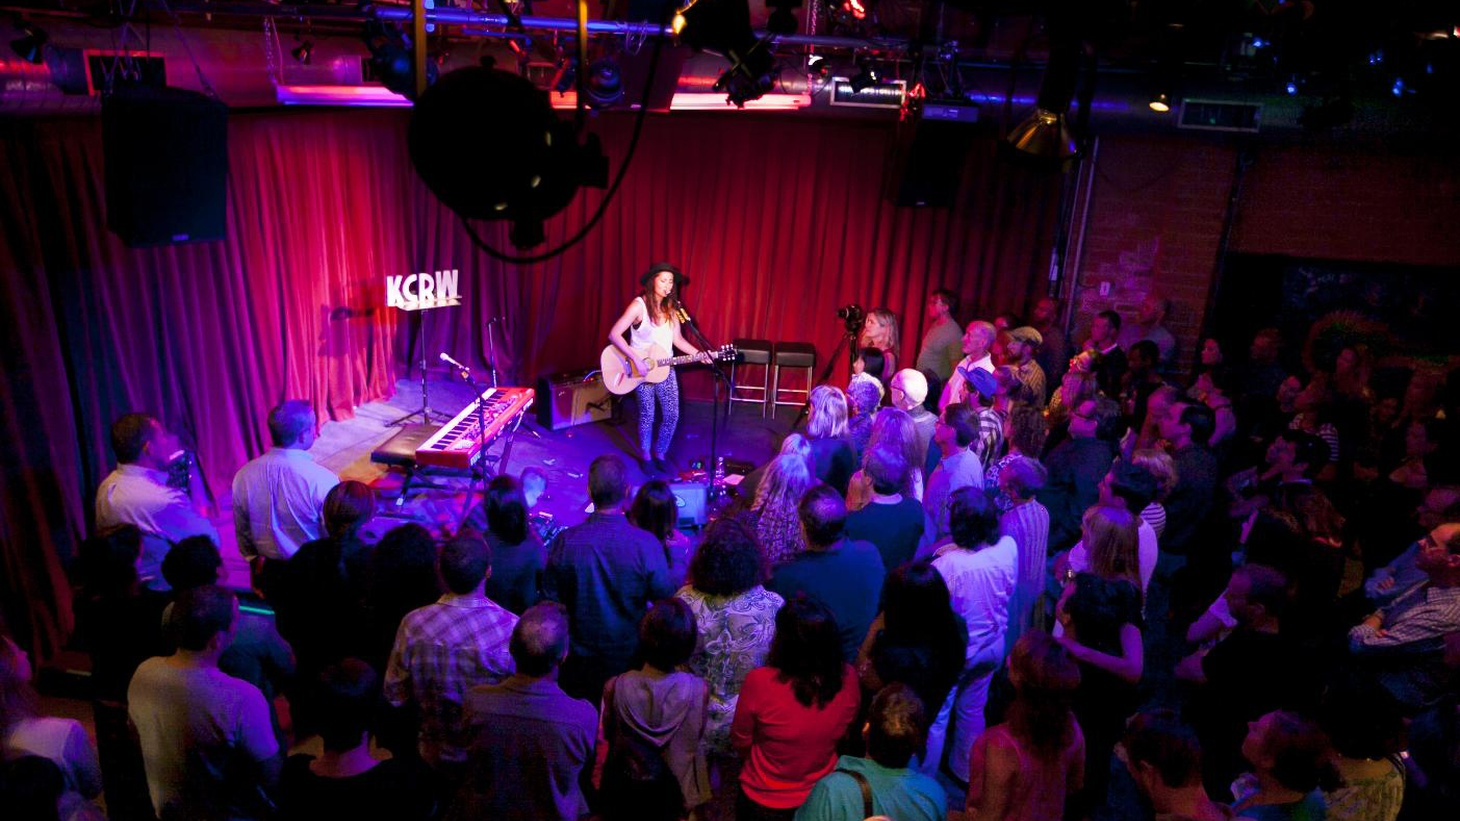 Guitarist and songwriter extraordinaire KT Tunstall delighted a small audience, performing a solo acoustic set of songs from her new album at KCRW's Apogee Sessions.